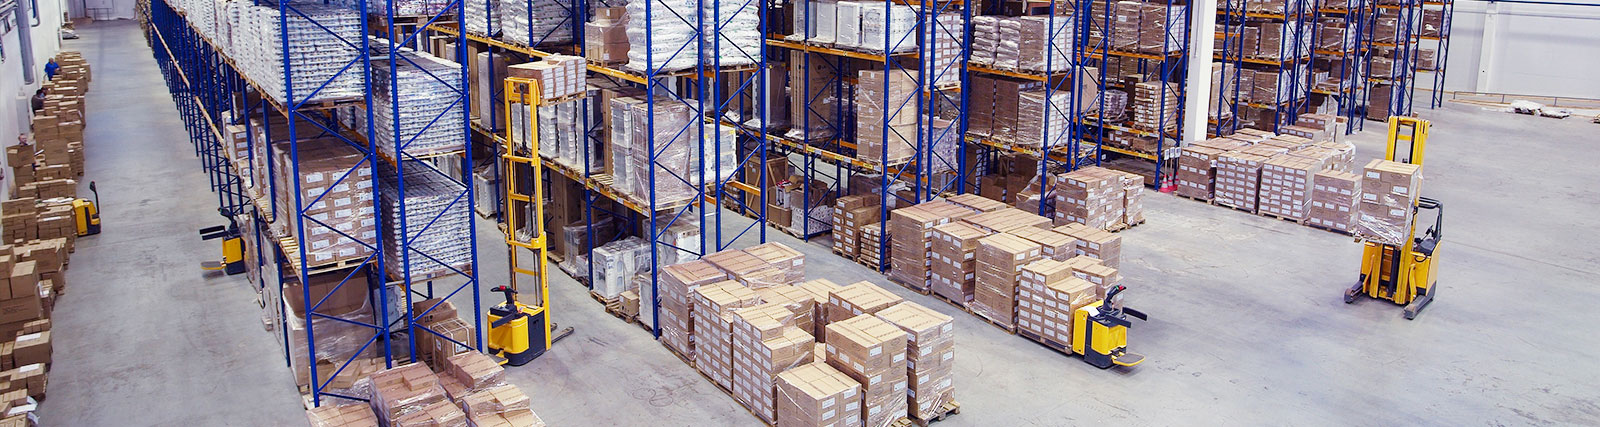 warehouse with aisles of rack